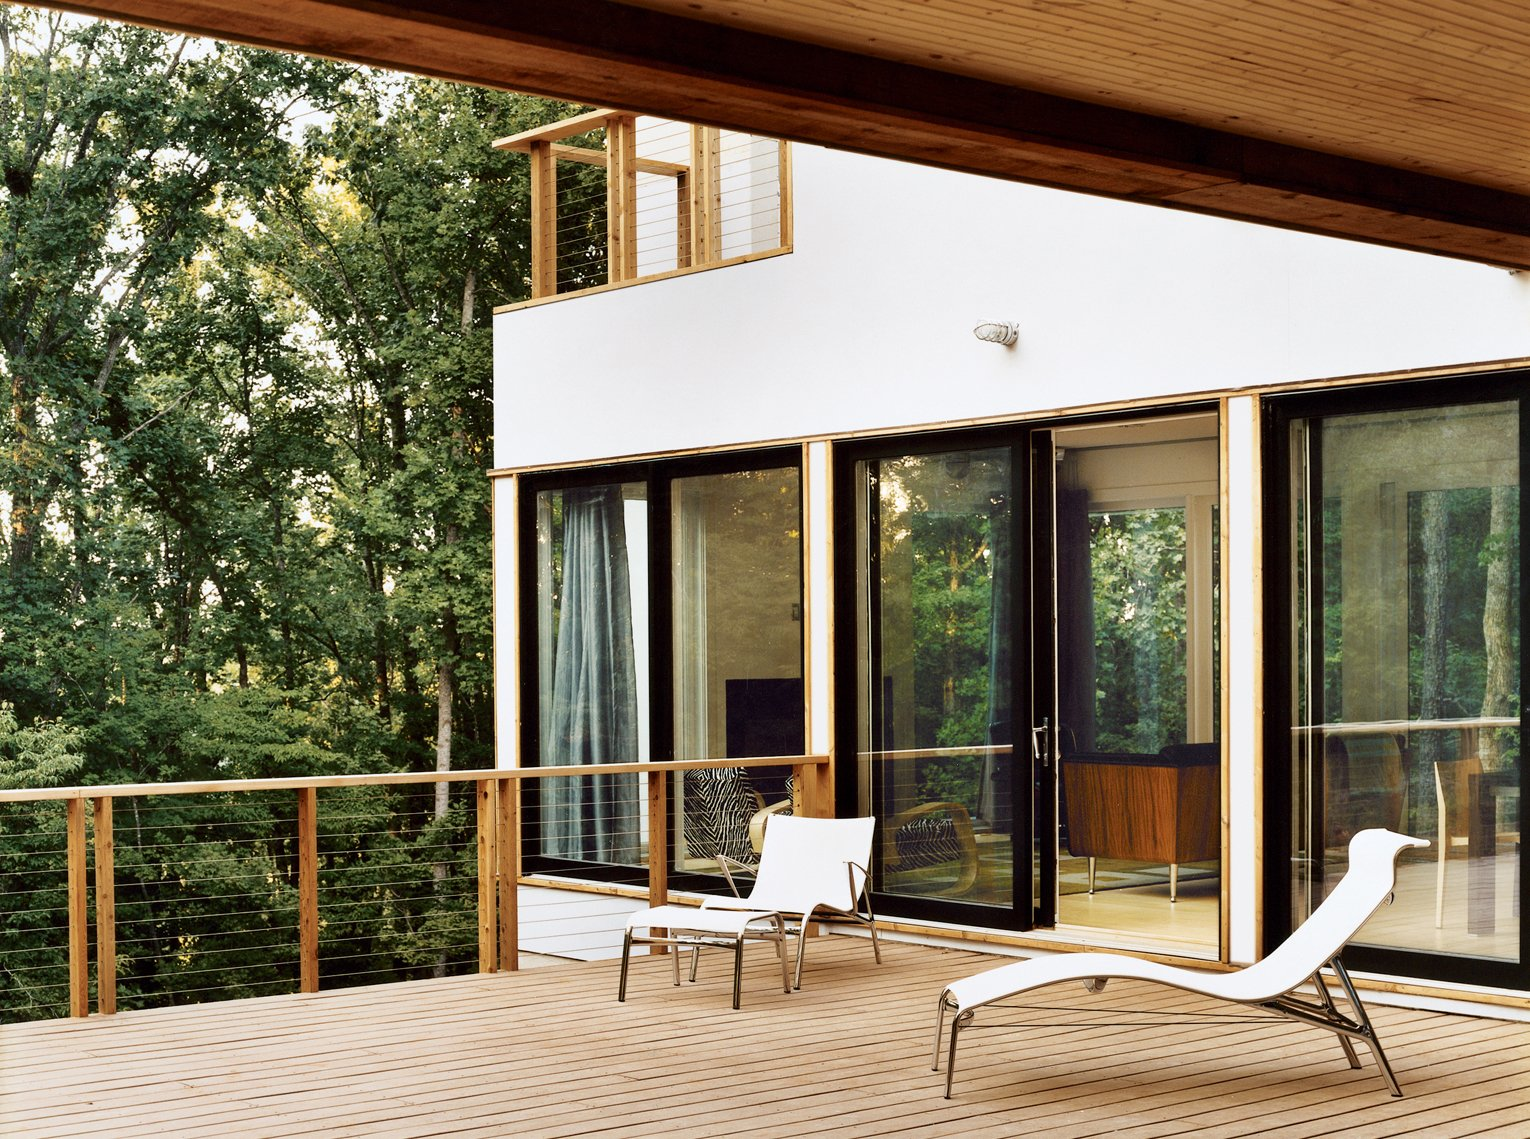 The private site allowed for generous windows and decks, but the Res 4 design could be adapted to   a more urban setting as well. Ultimately, the Dwell Home proves that a manufactured house can be site-specific. The design, scale, and materials are appropriate to the climate and context.  Photo 12 of 12 in Prefab, Proven